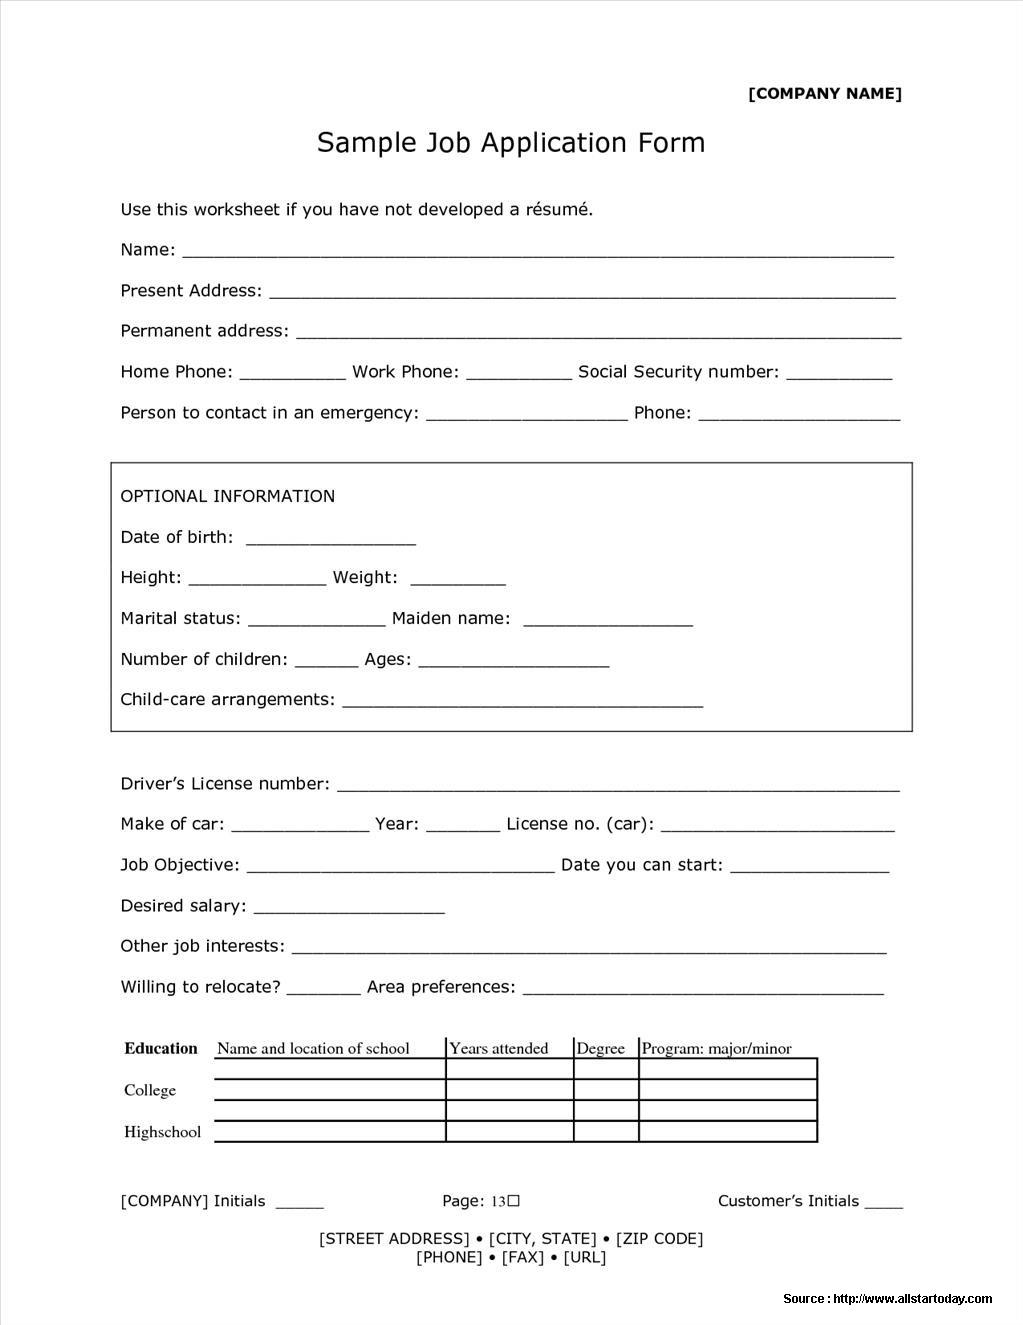 Receptionist Application Form Example